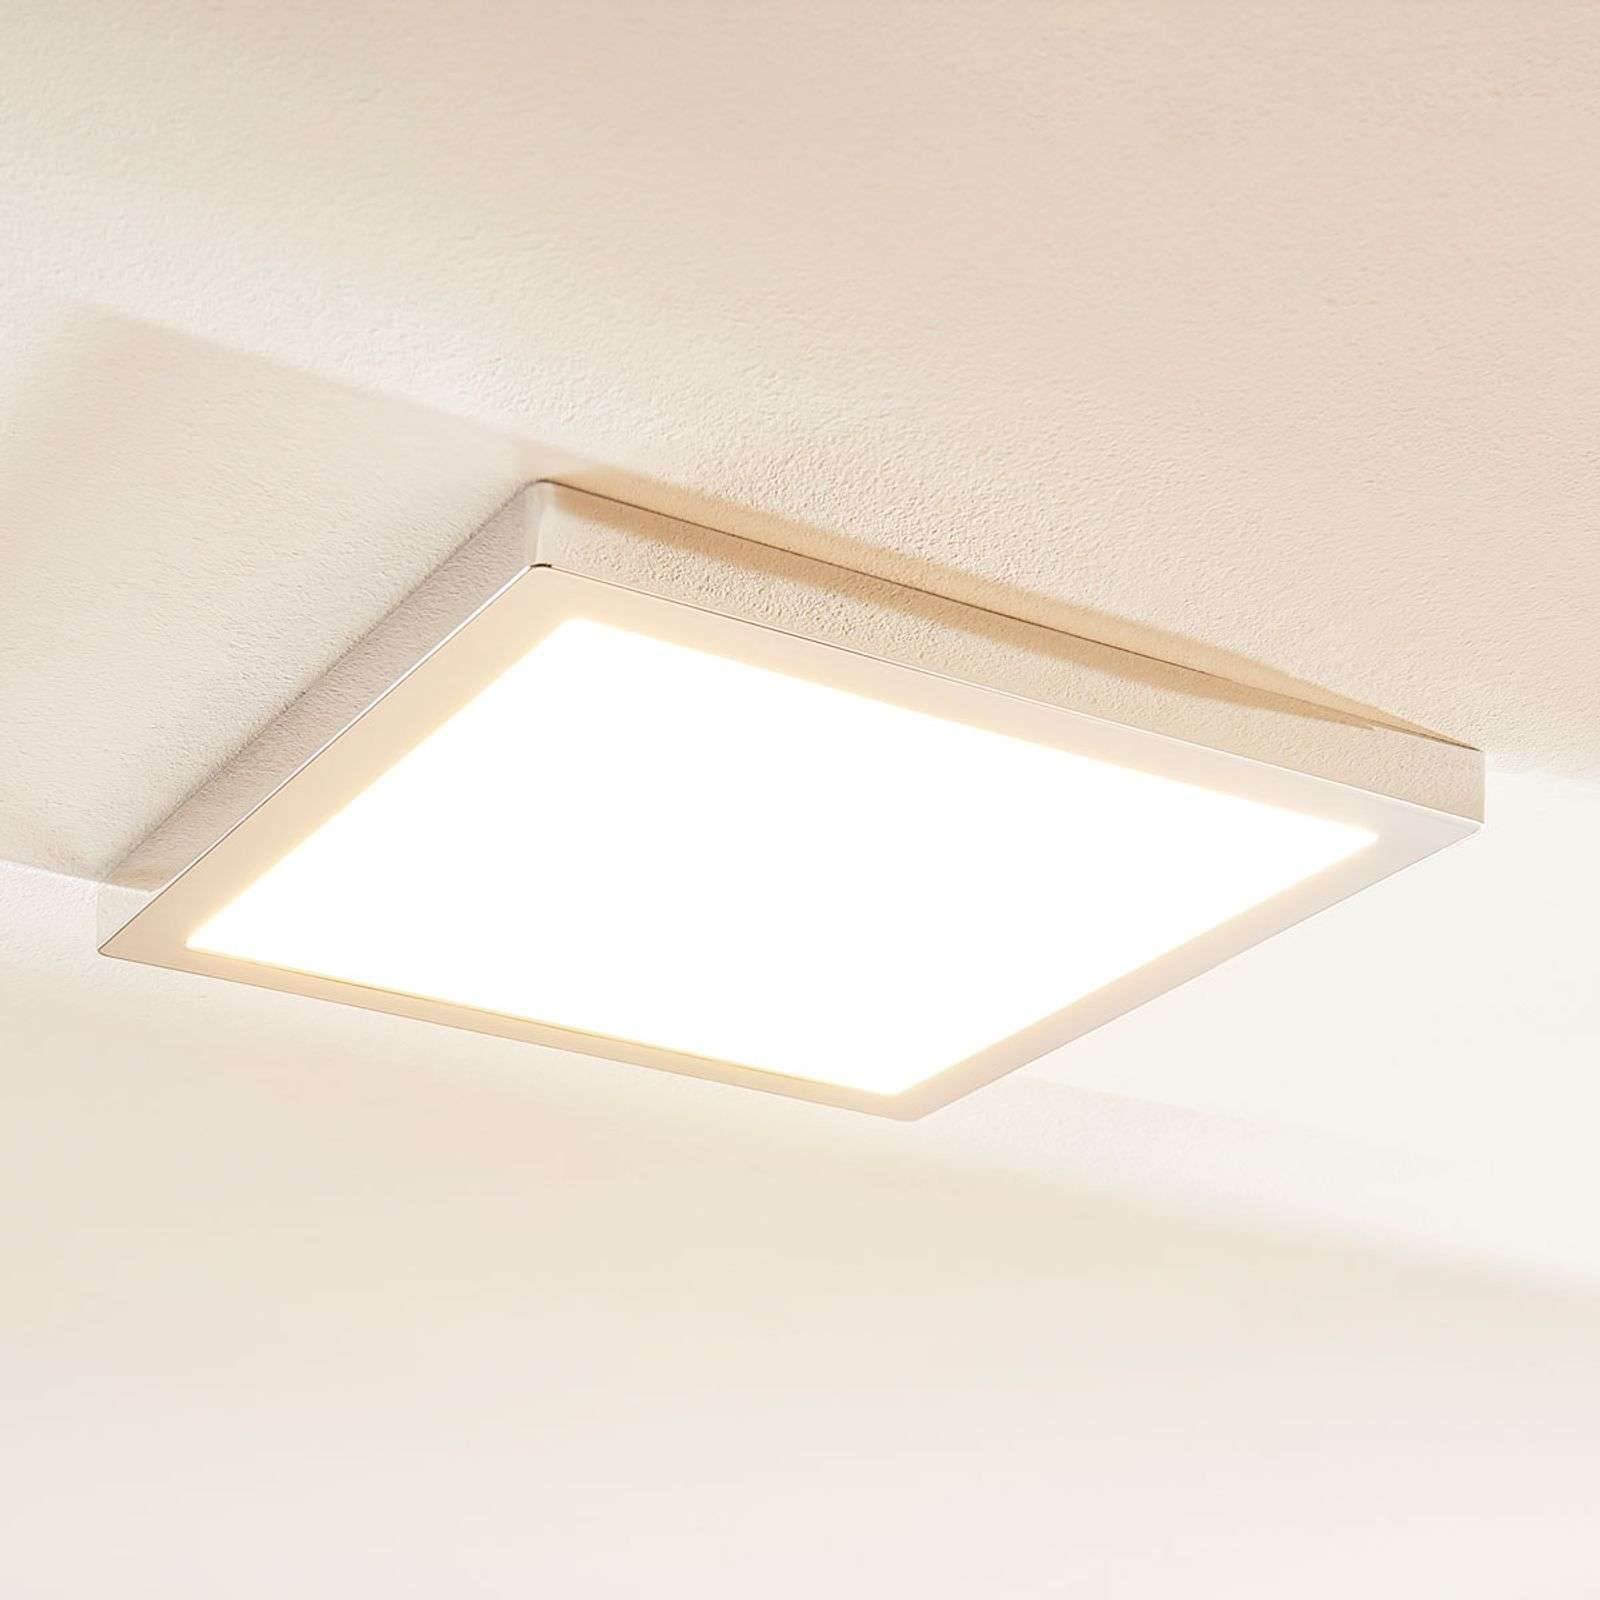 Plafonnier LED Solvie chromé, dimmable